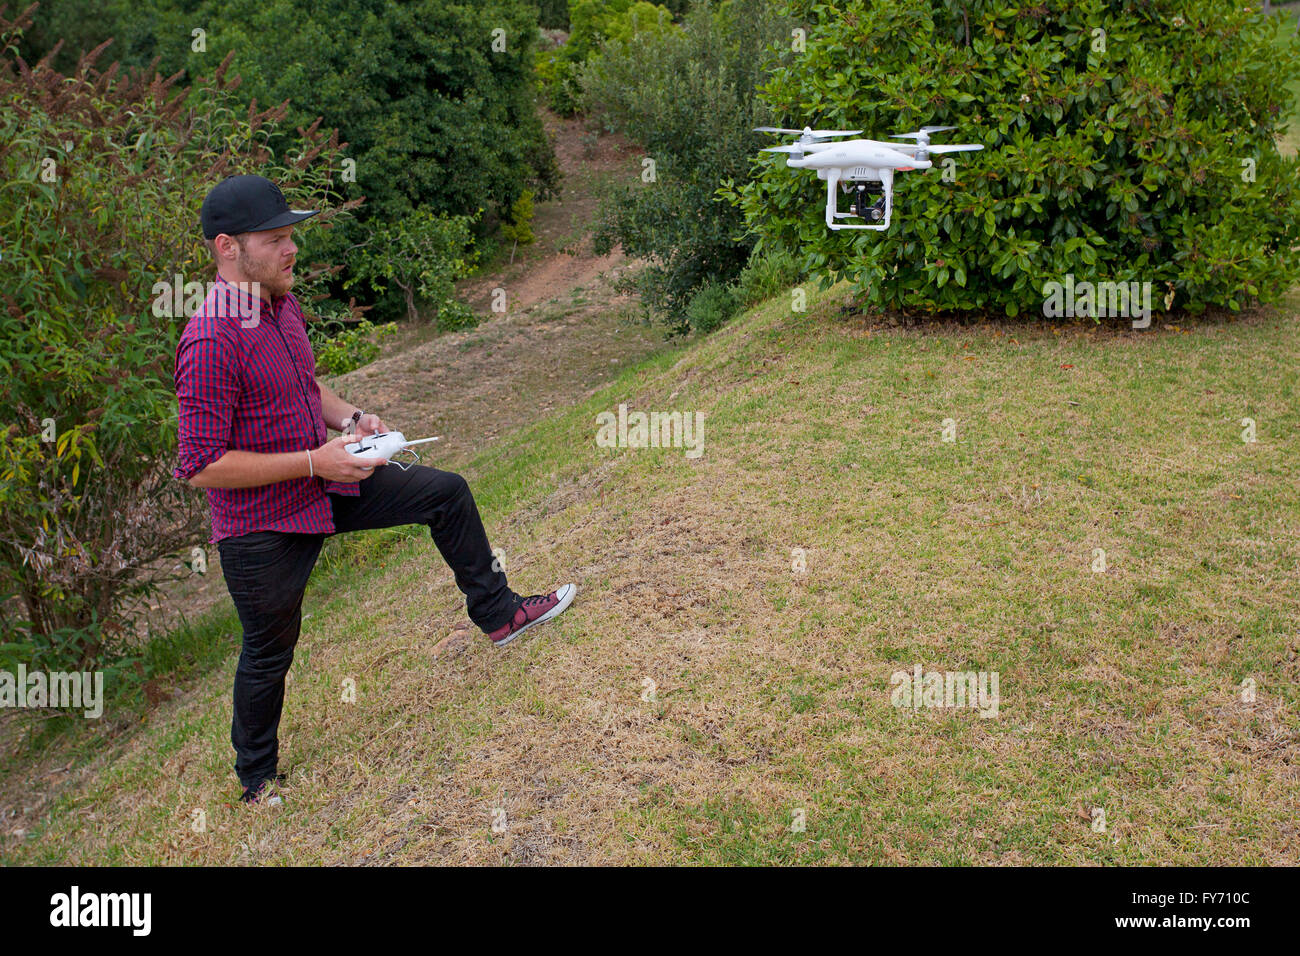 Pilot controlling a Phantom drone for commercial aerial photography - Stock Image